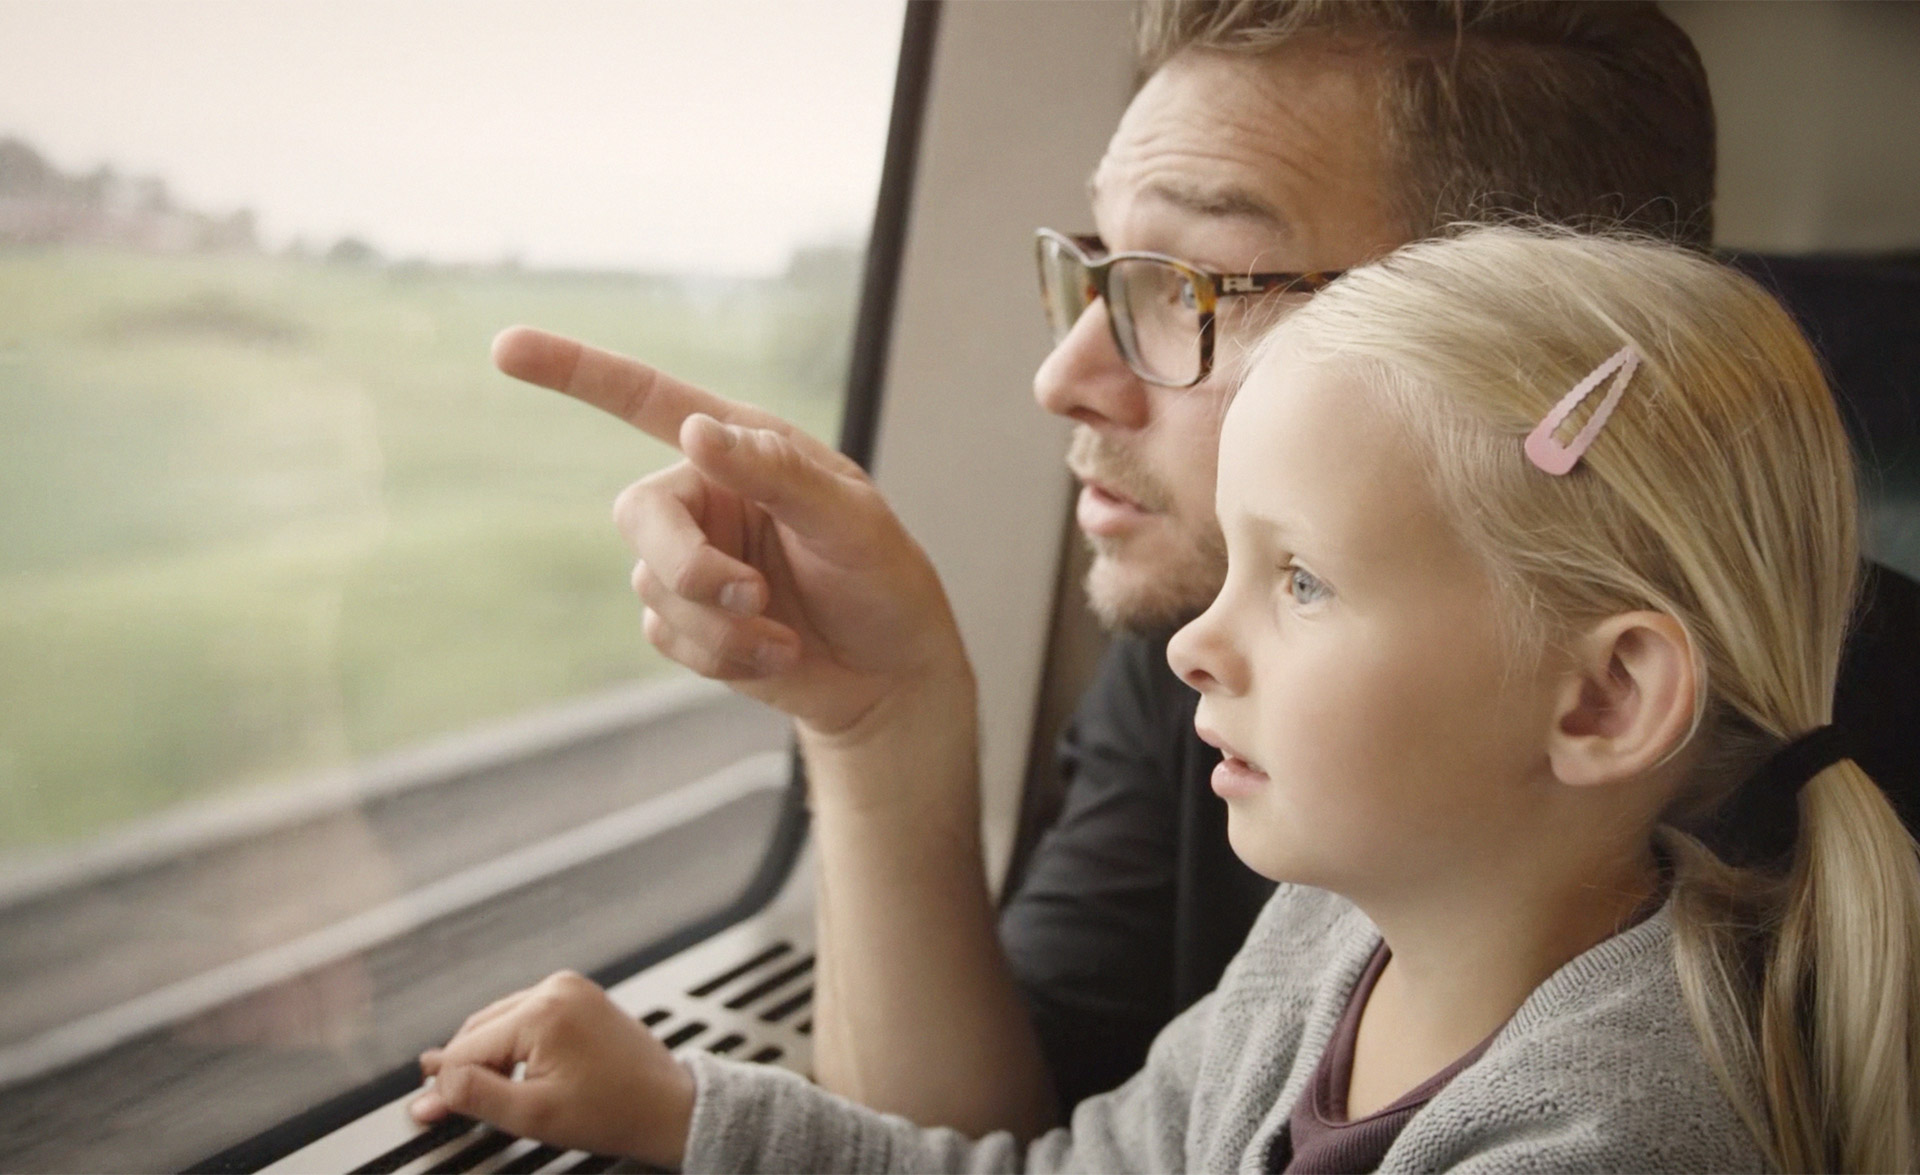 Father and daughter on a train in Sweden